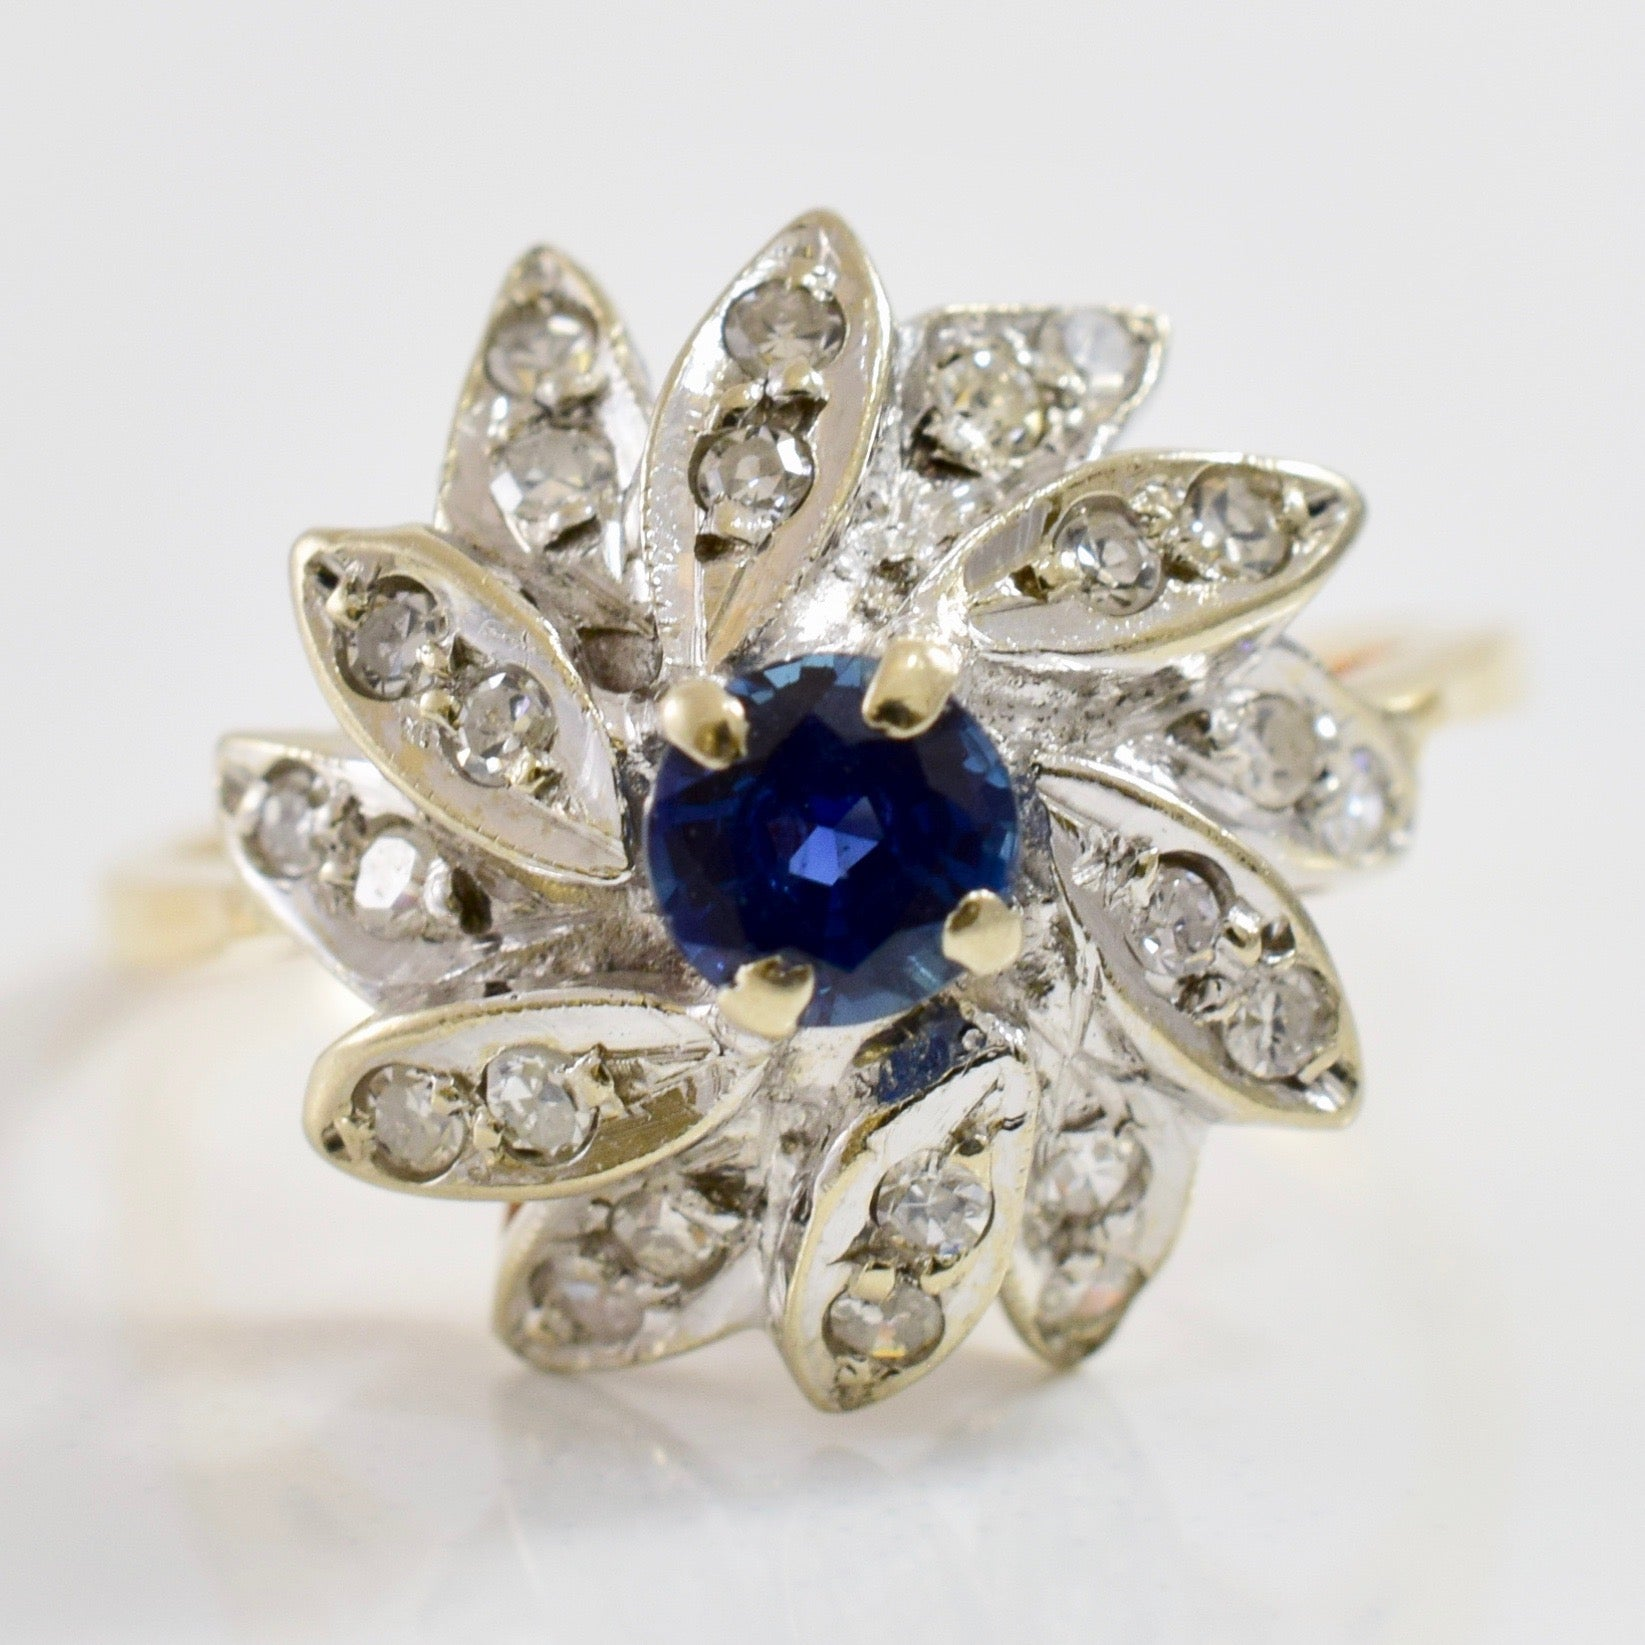 High Set Floral Diamond and Sapphire Ring | 0.18 ctw SZ 6.75 |